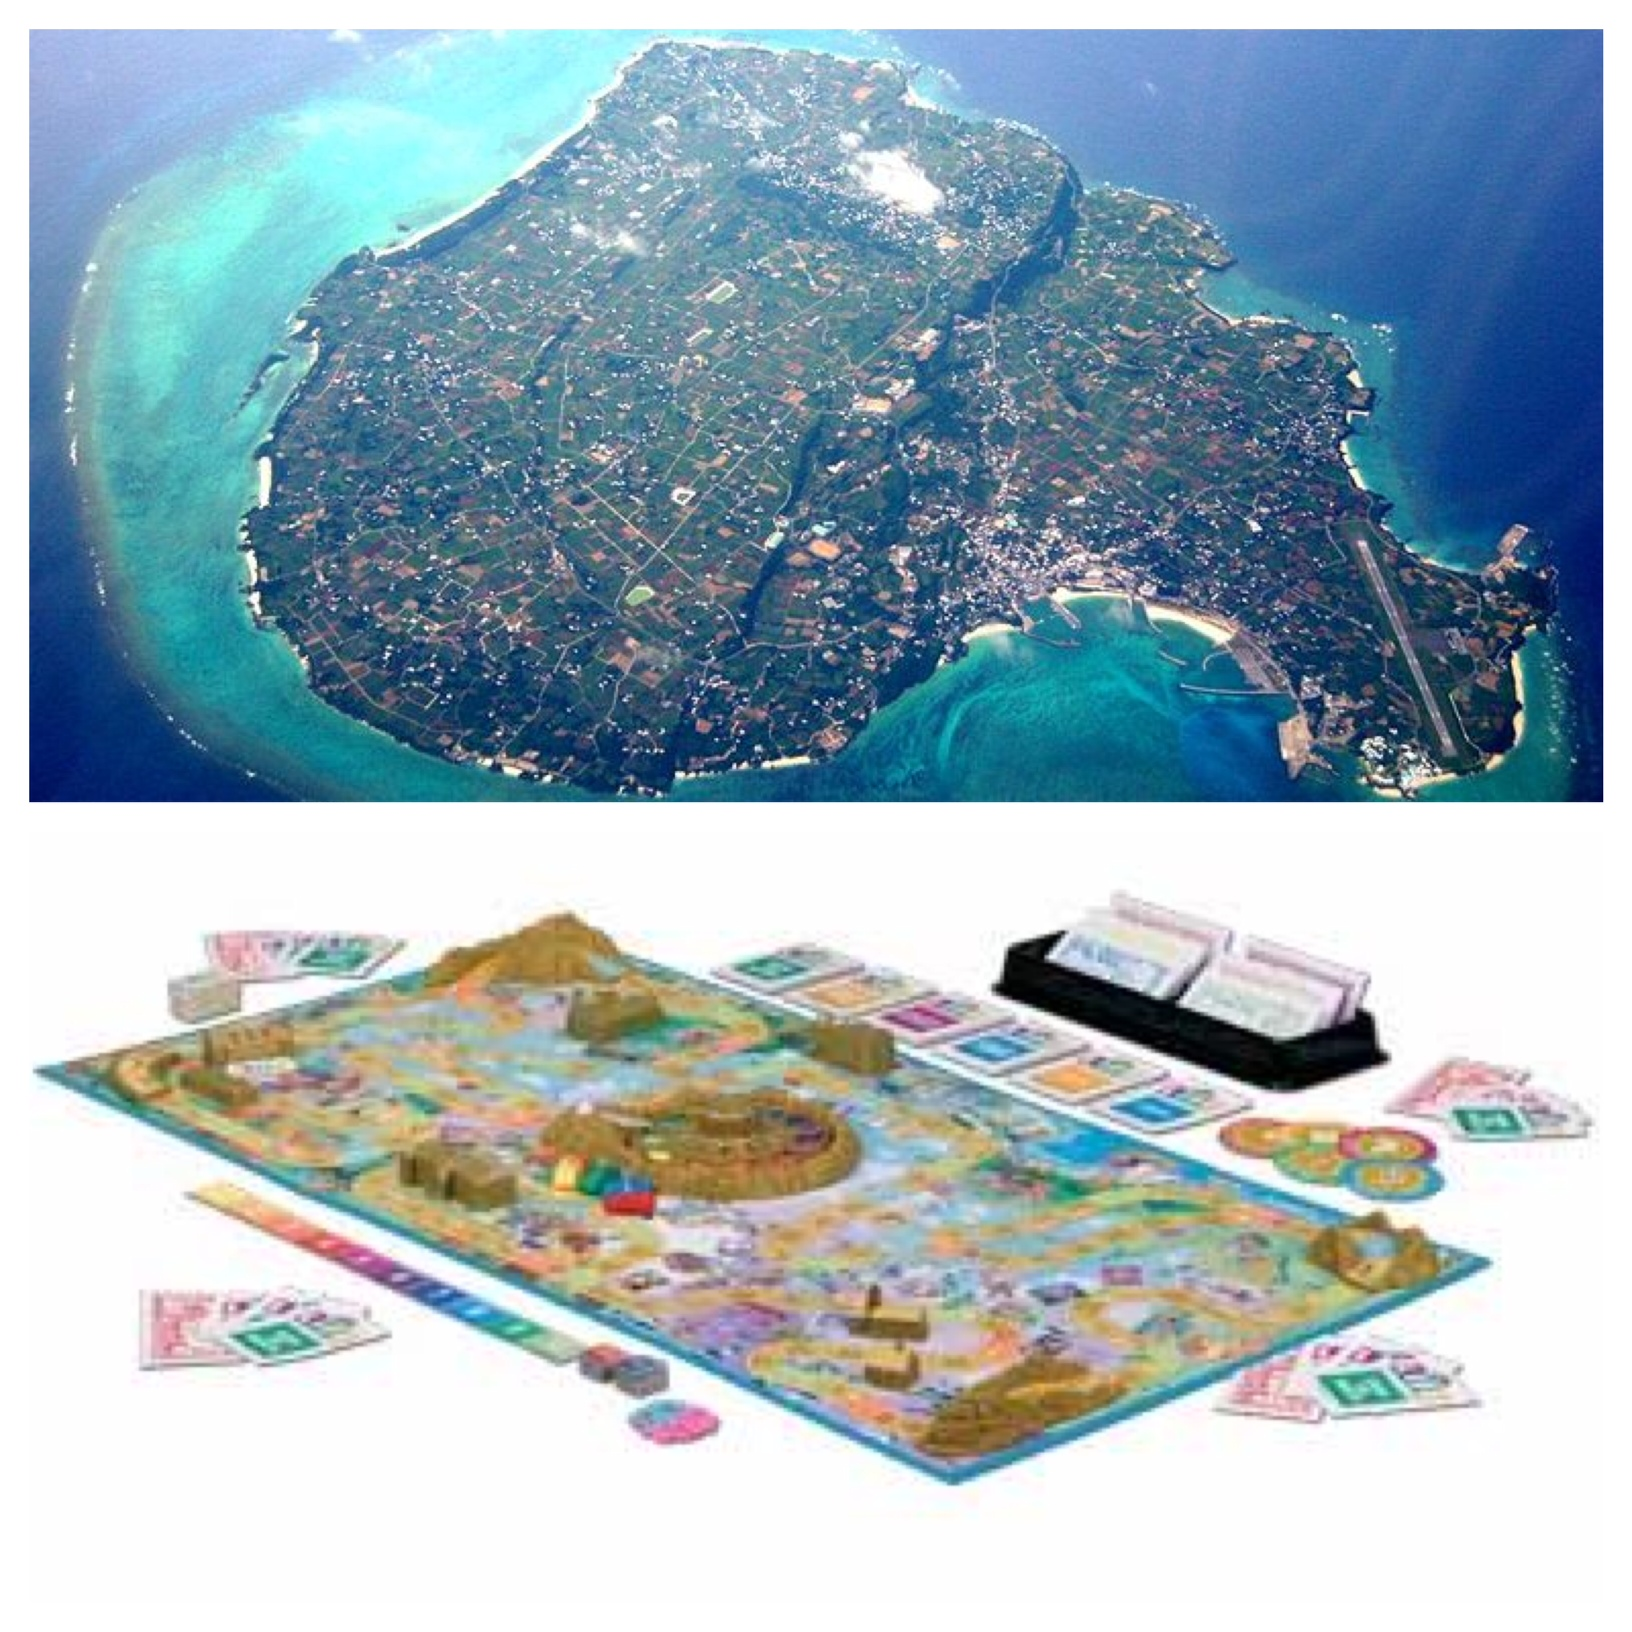 Yoron Japan  city photo : Japan's Yoron Island to host real world Game of LIFE TODAY.com